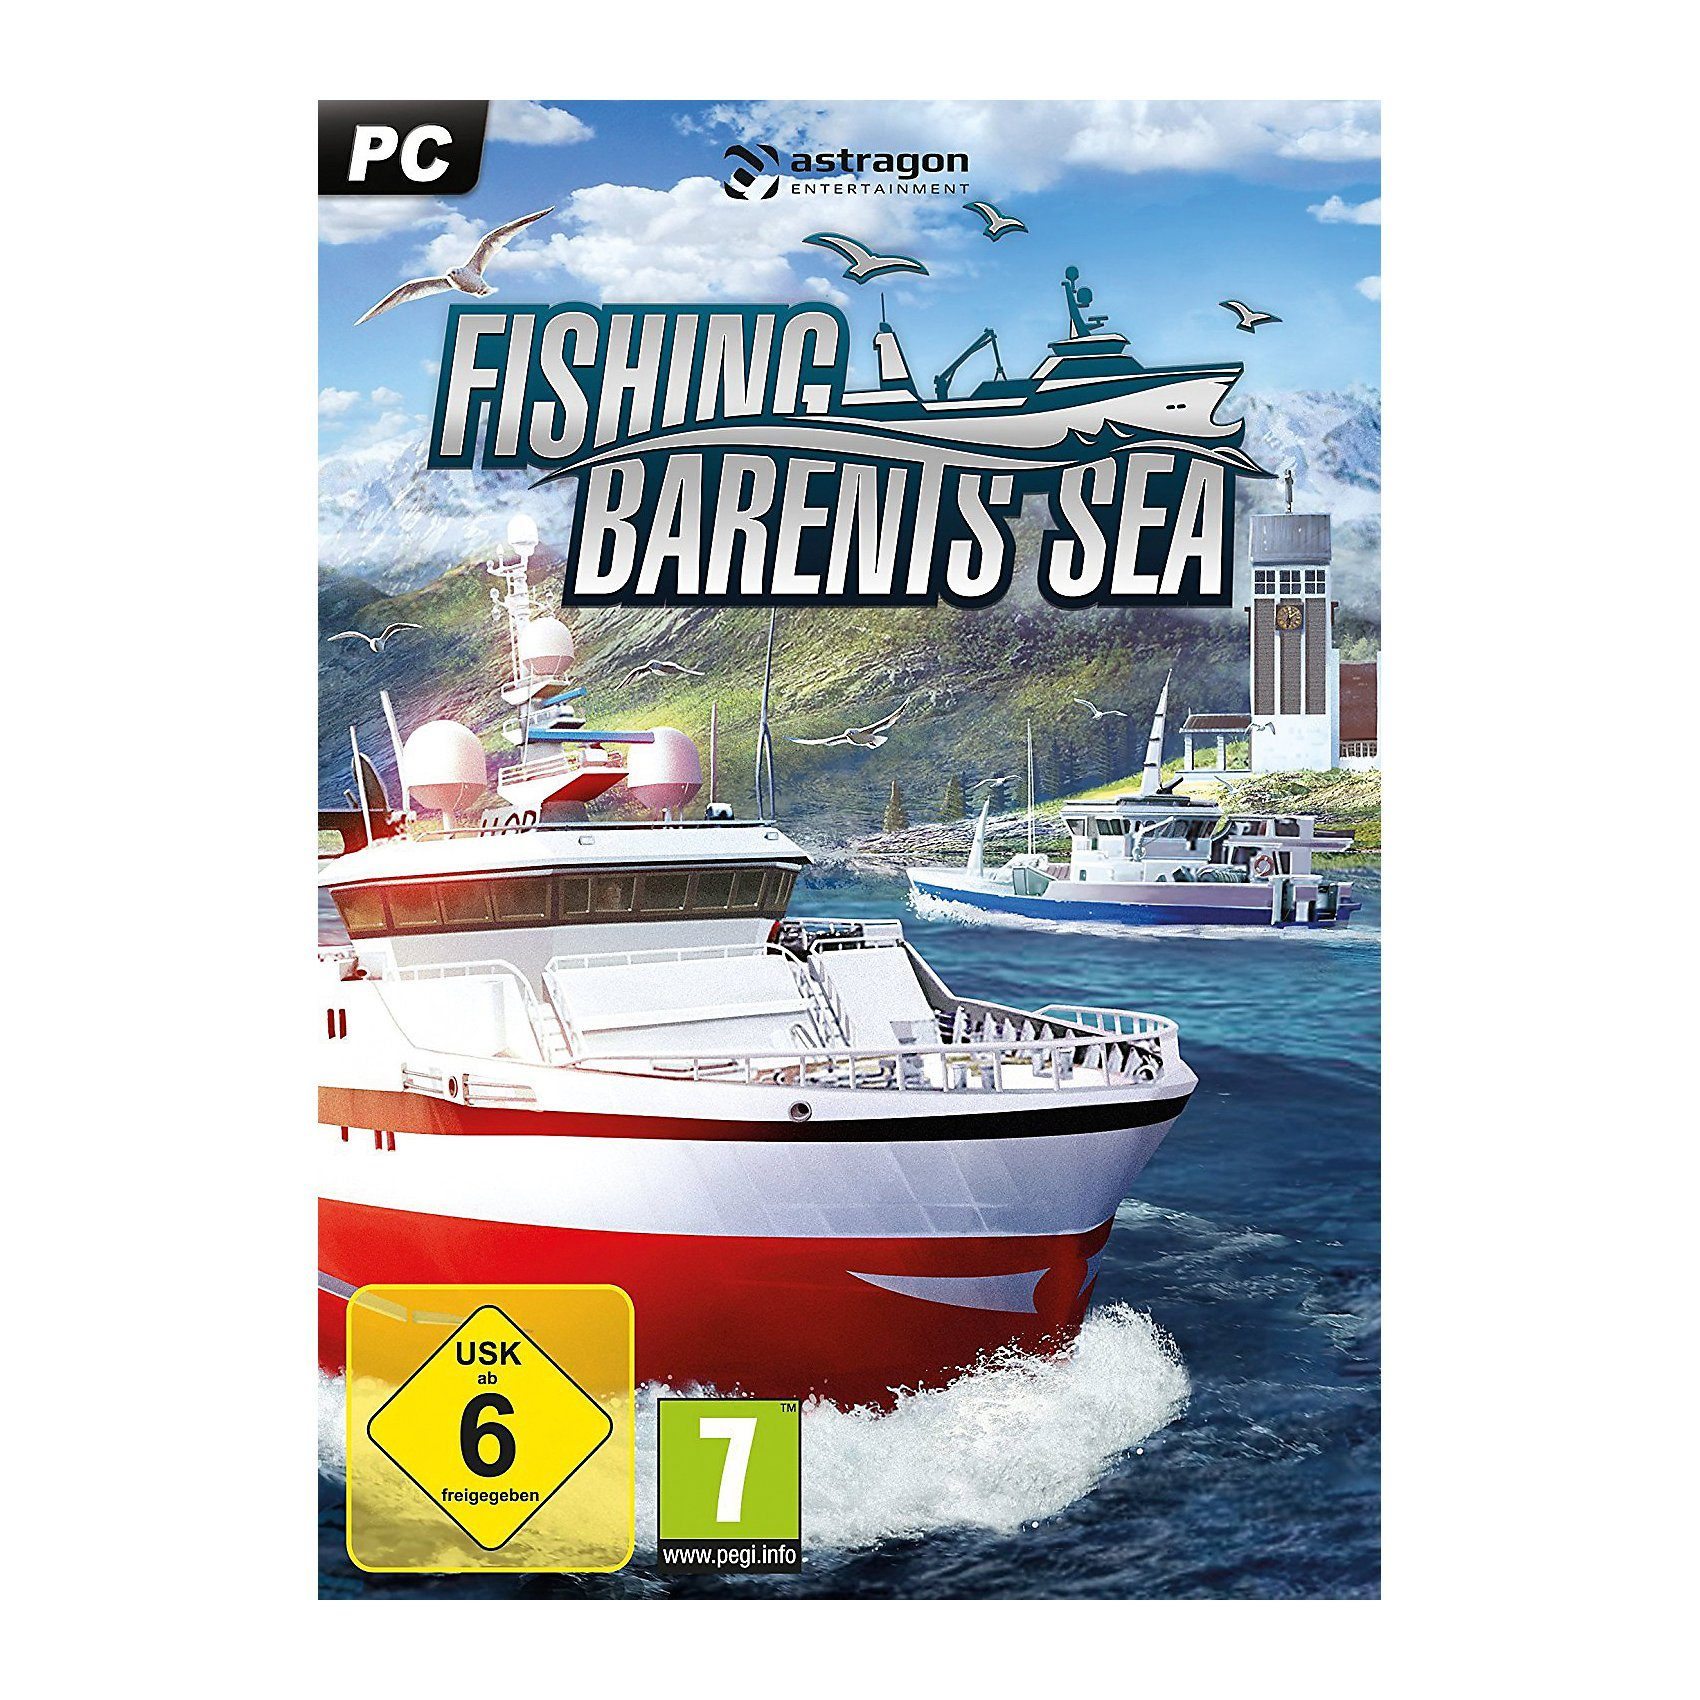 PC Fishing: Barents Sea